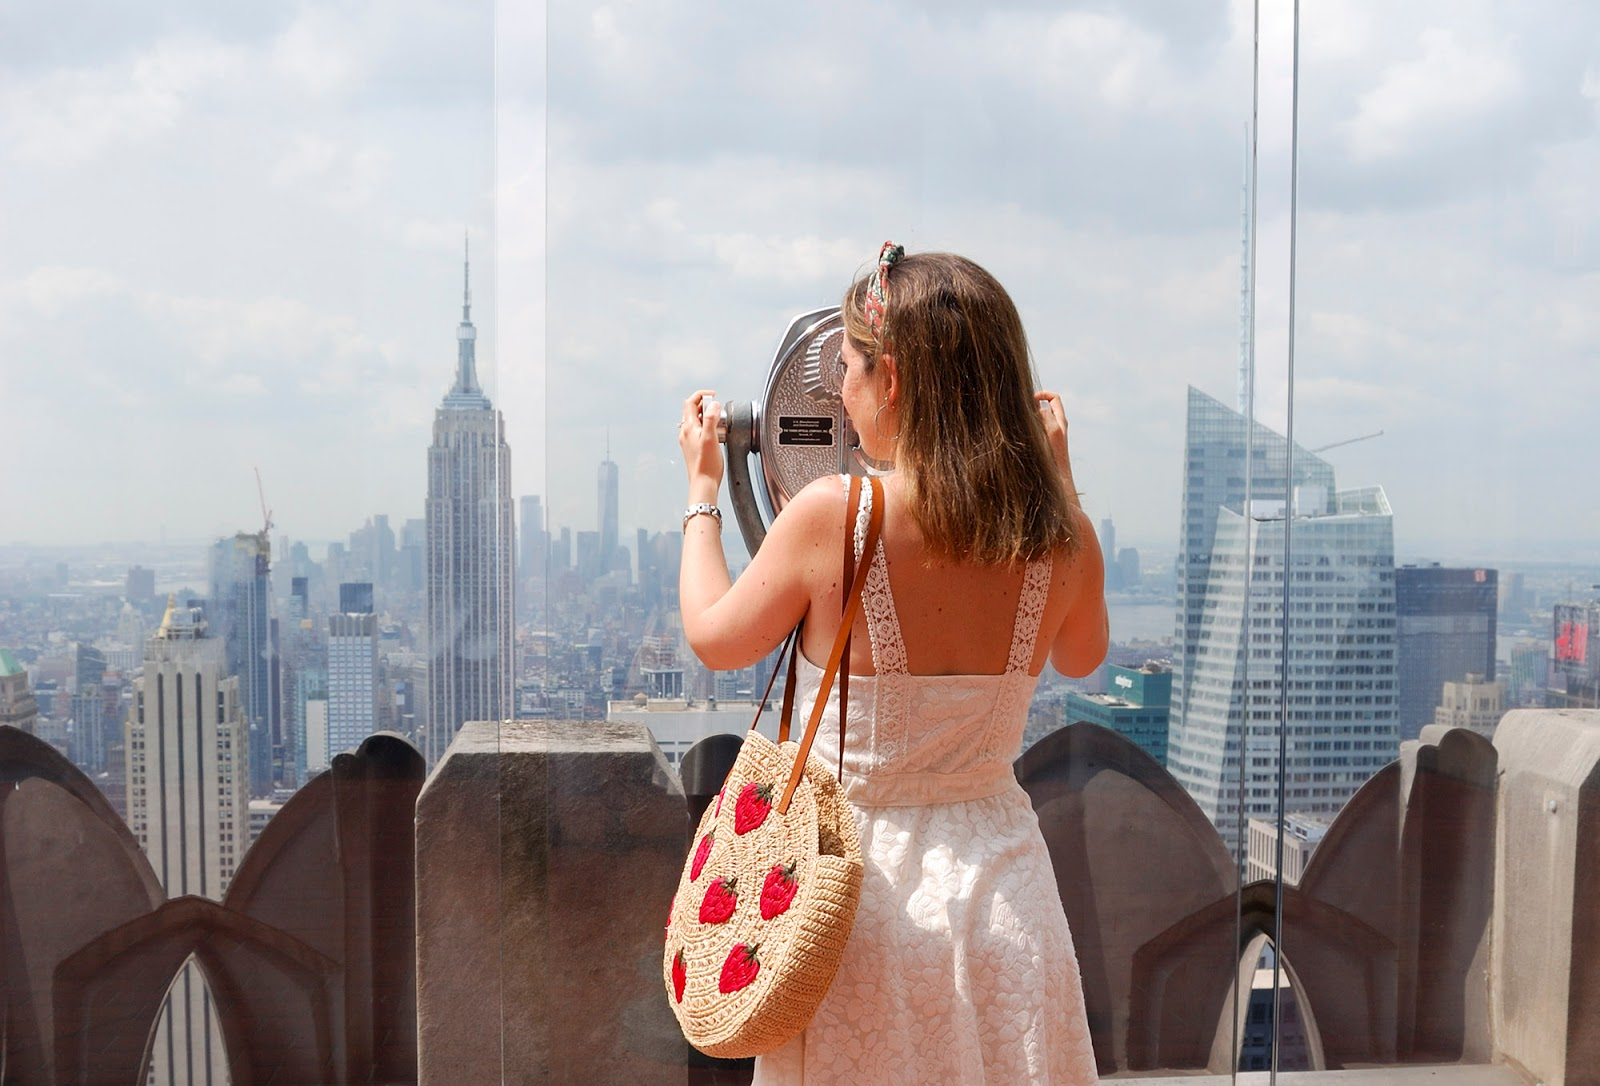 new york itinerary guide plan manhattan top of the rock deck observatory rockefeller center empire state building